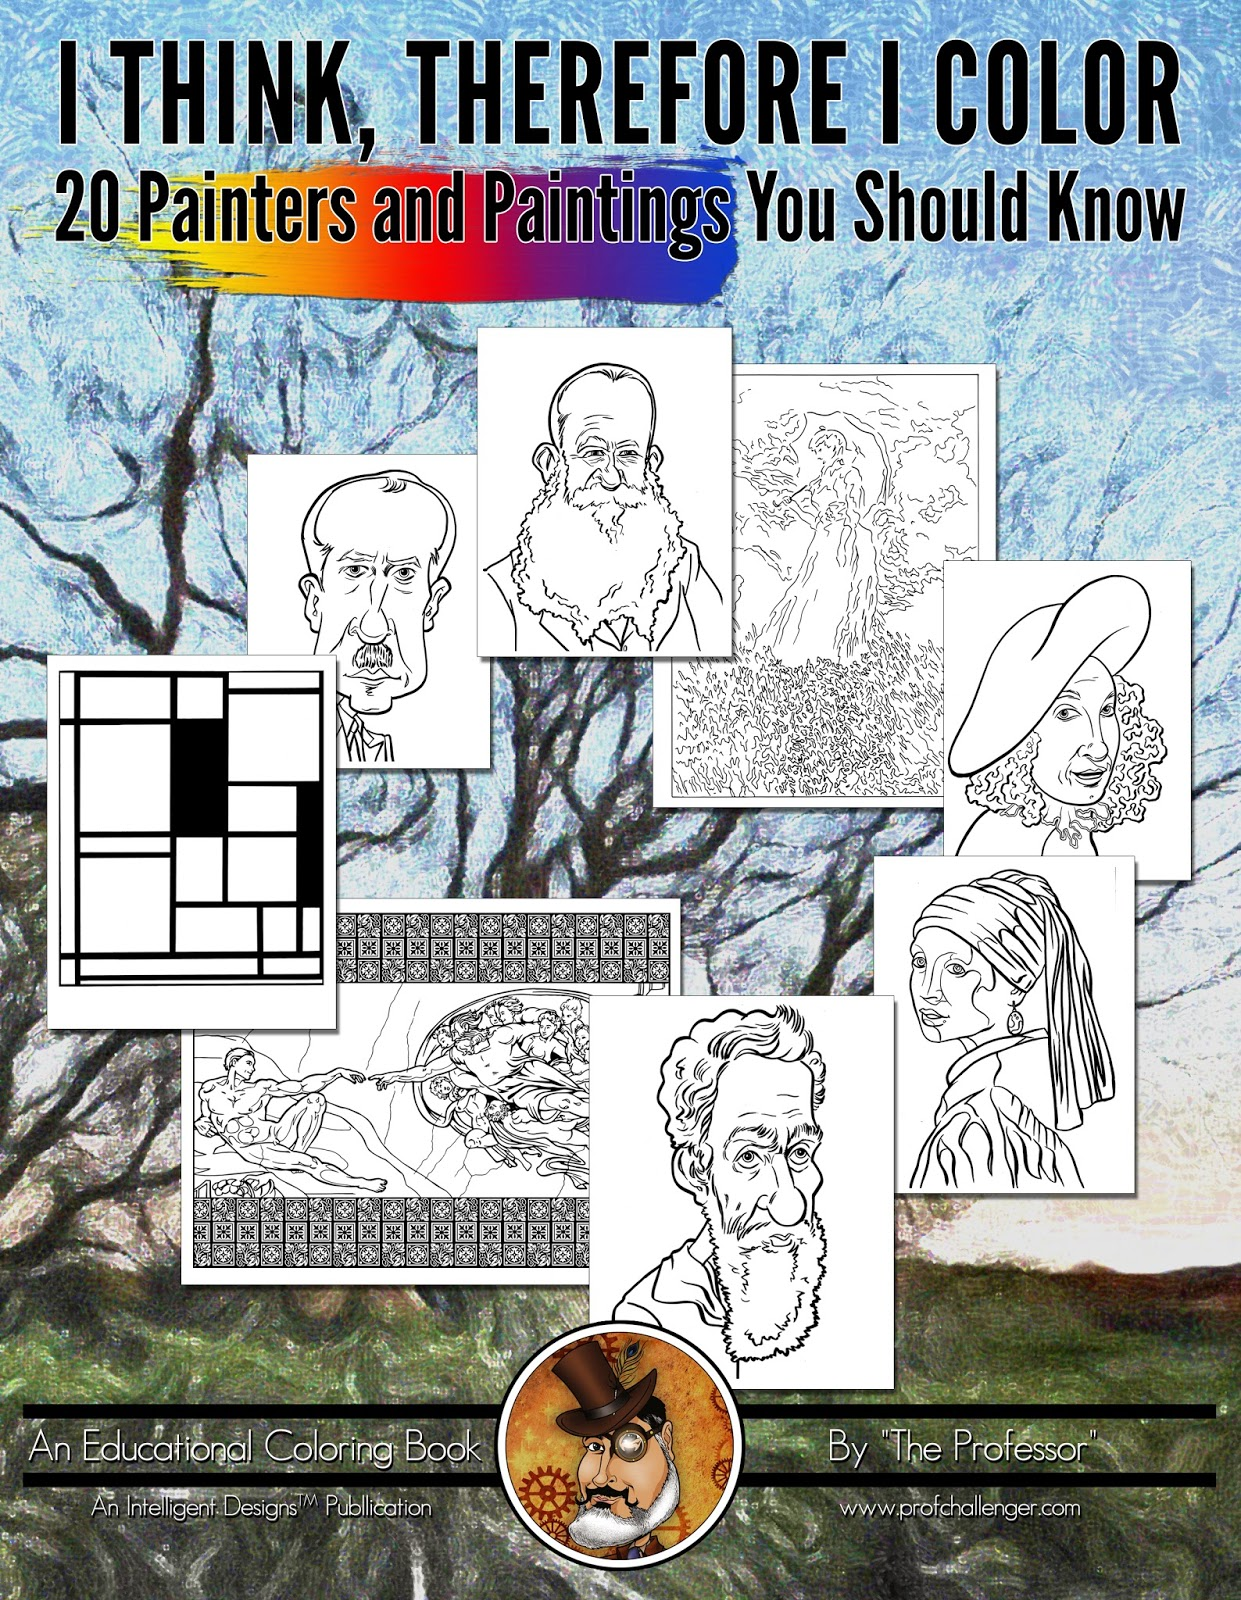 ANNOUNCING 20 PAINTERS PAINTINGS YOU SHOULD KNOW AN ALL AGES EDUCATIONAL COLORING BOOK